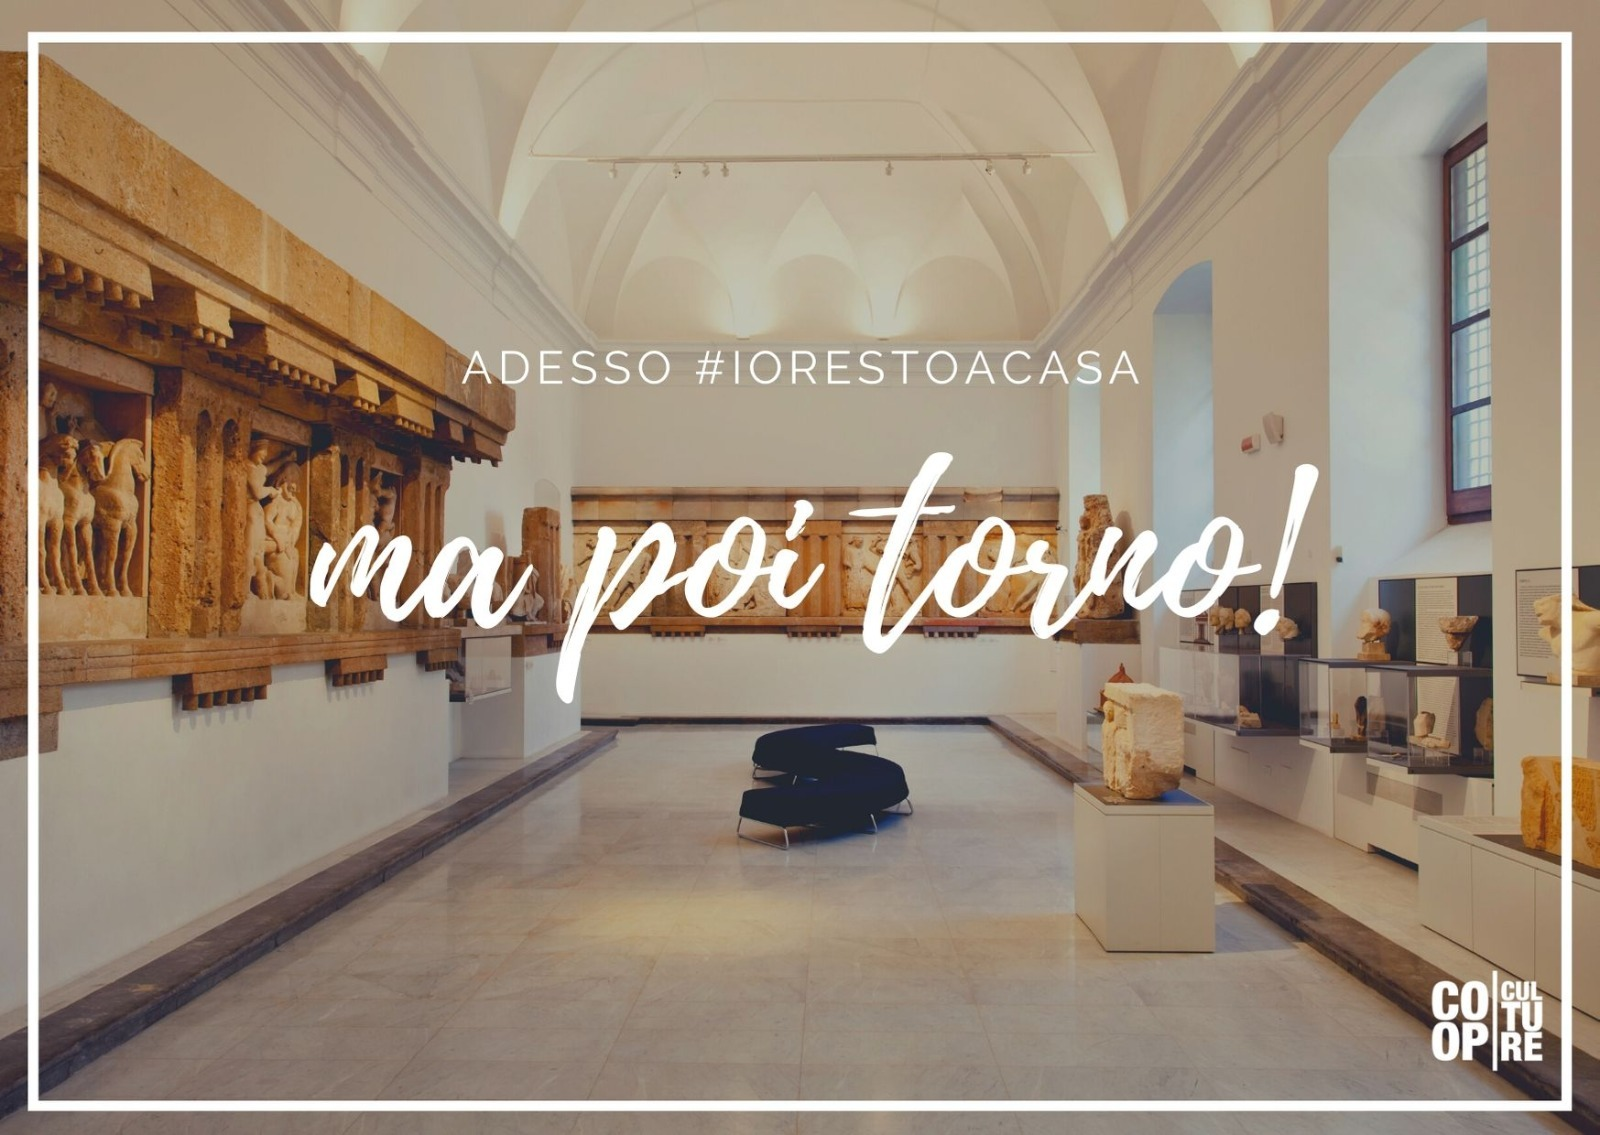 cartolina del progetto Culture at Home